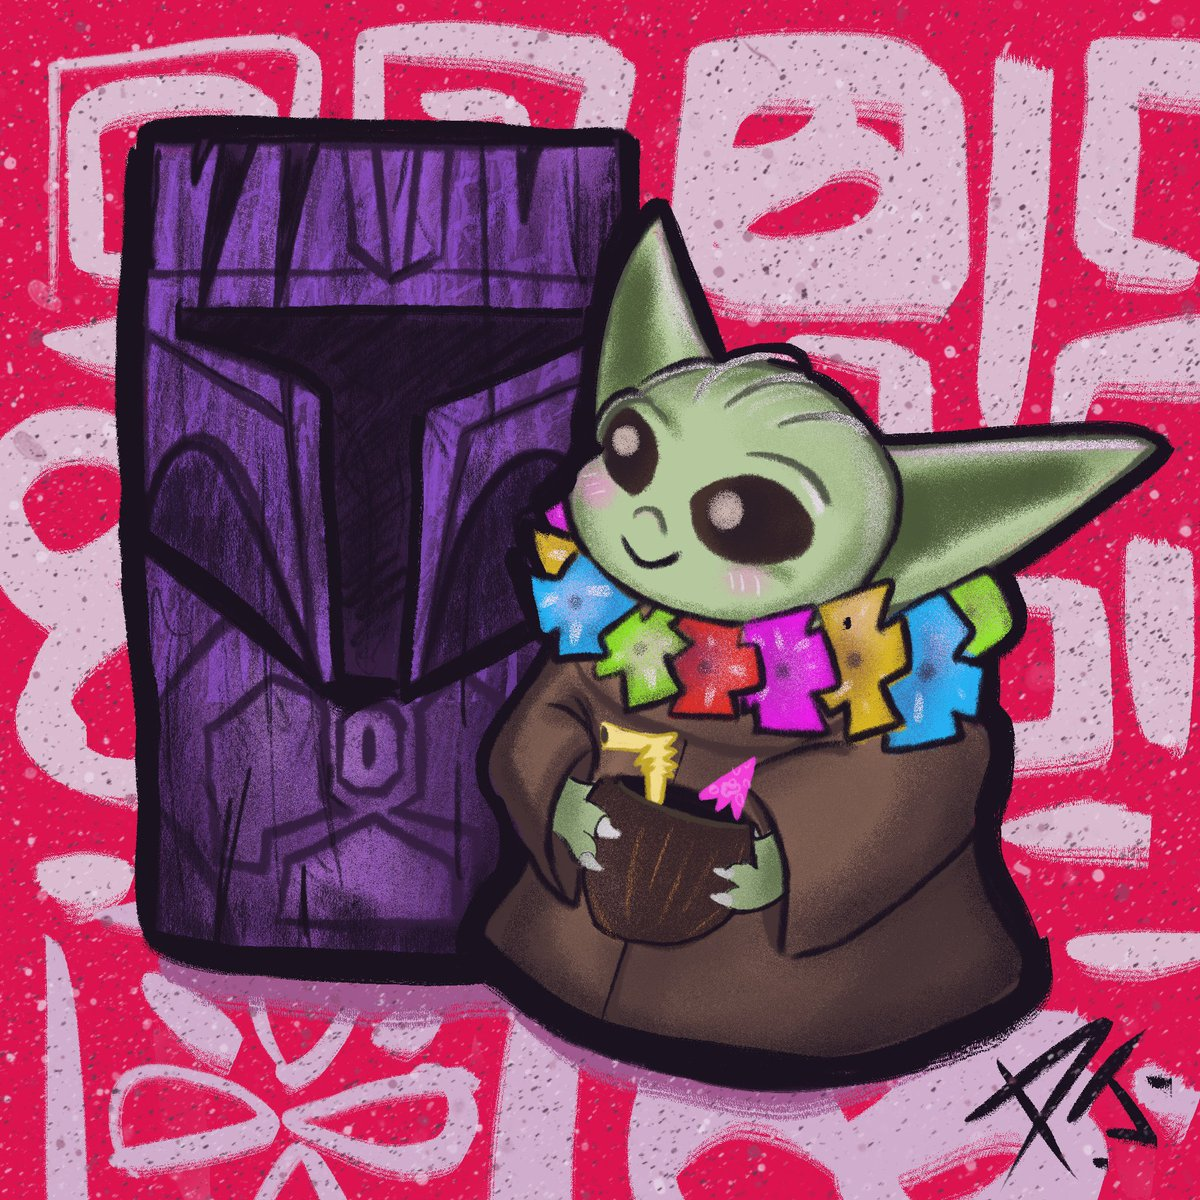 Dj Wants You To Vote On Twitter Happy Themandalorian Day I Drew Up Everyone S Favorite Lil Womp Rat Joining In On The Celebration Thechild Starwars Https T Co 8aoyzkbox9 Follow wompratbass to never miss another show. twitter